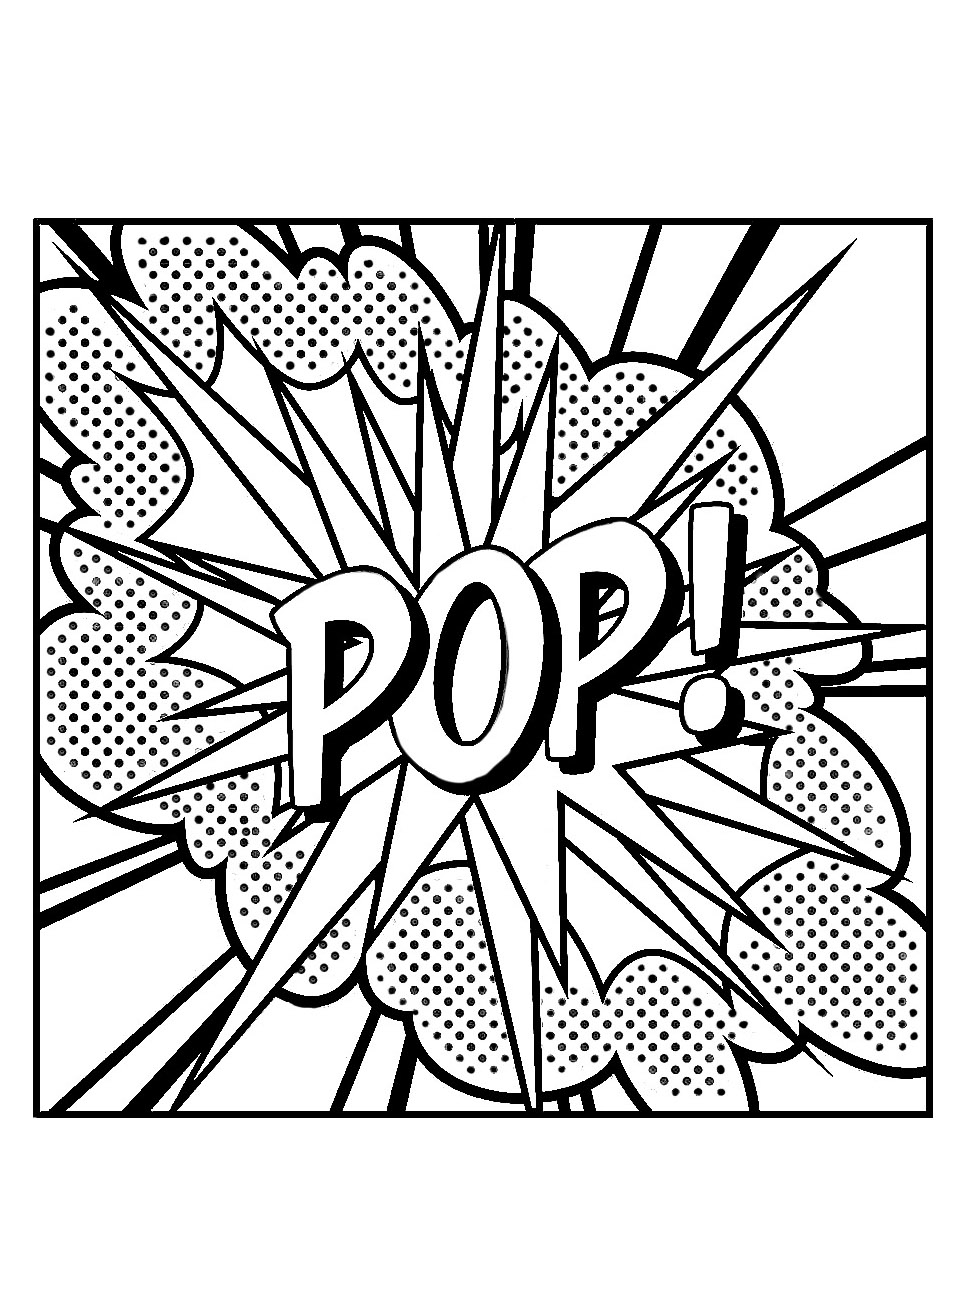 Pop roy lichtenstein - Pop Art Adult Coloring Pages